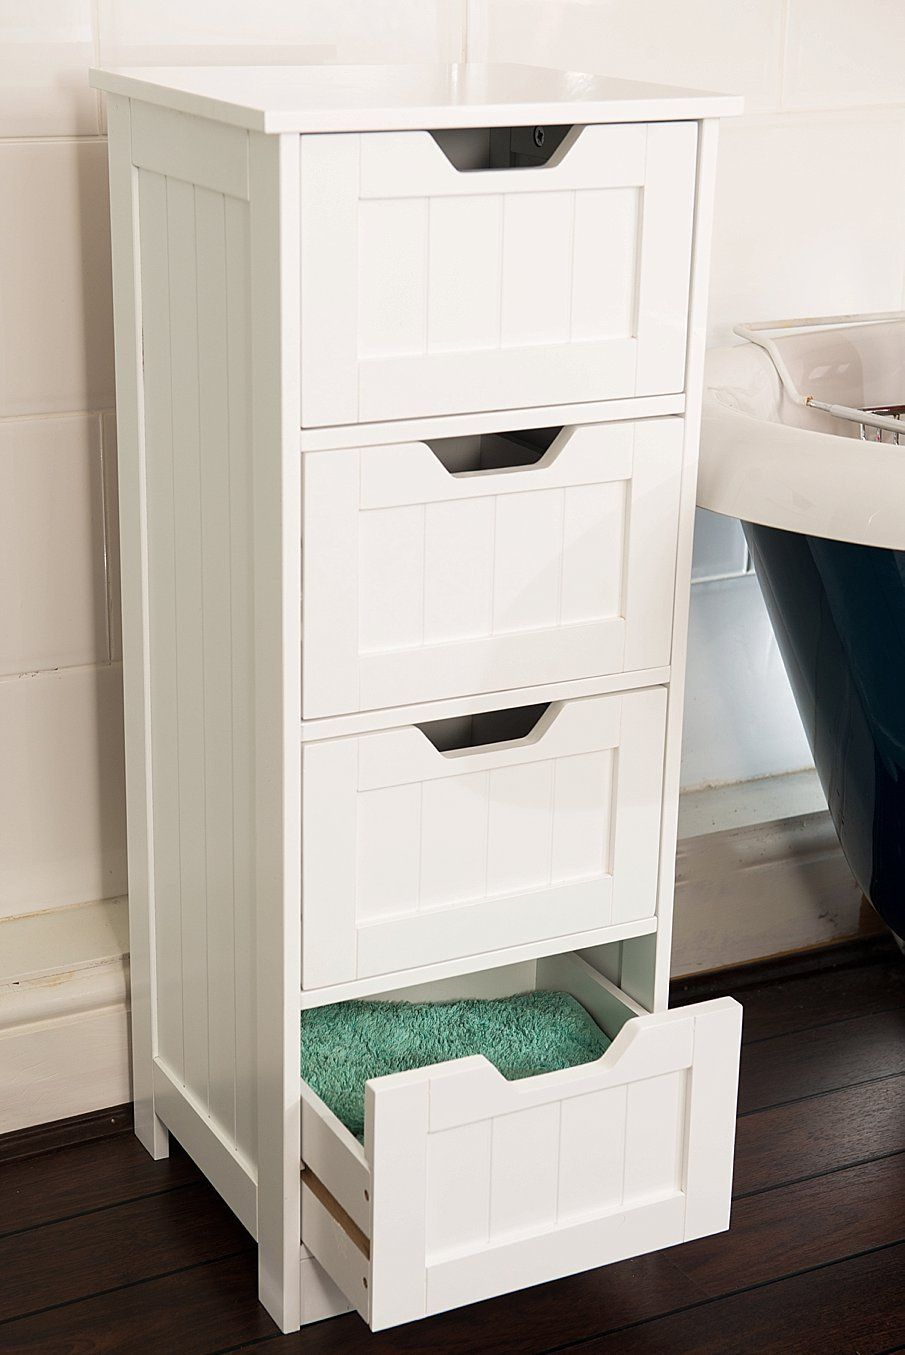 White Storage Cabinet. 4 Large Drawers. Bathroom Or ...